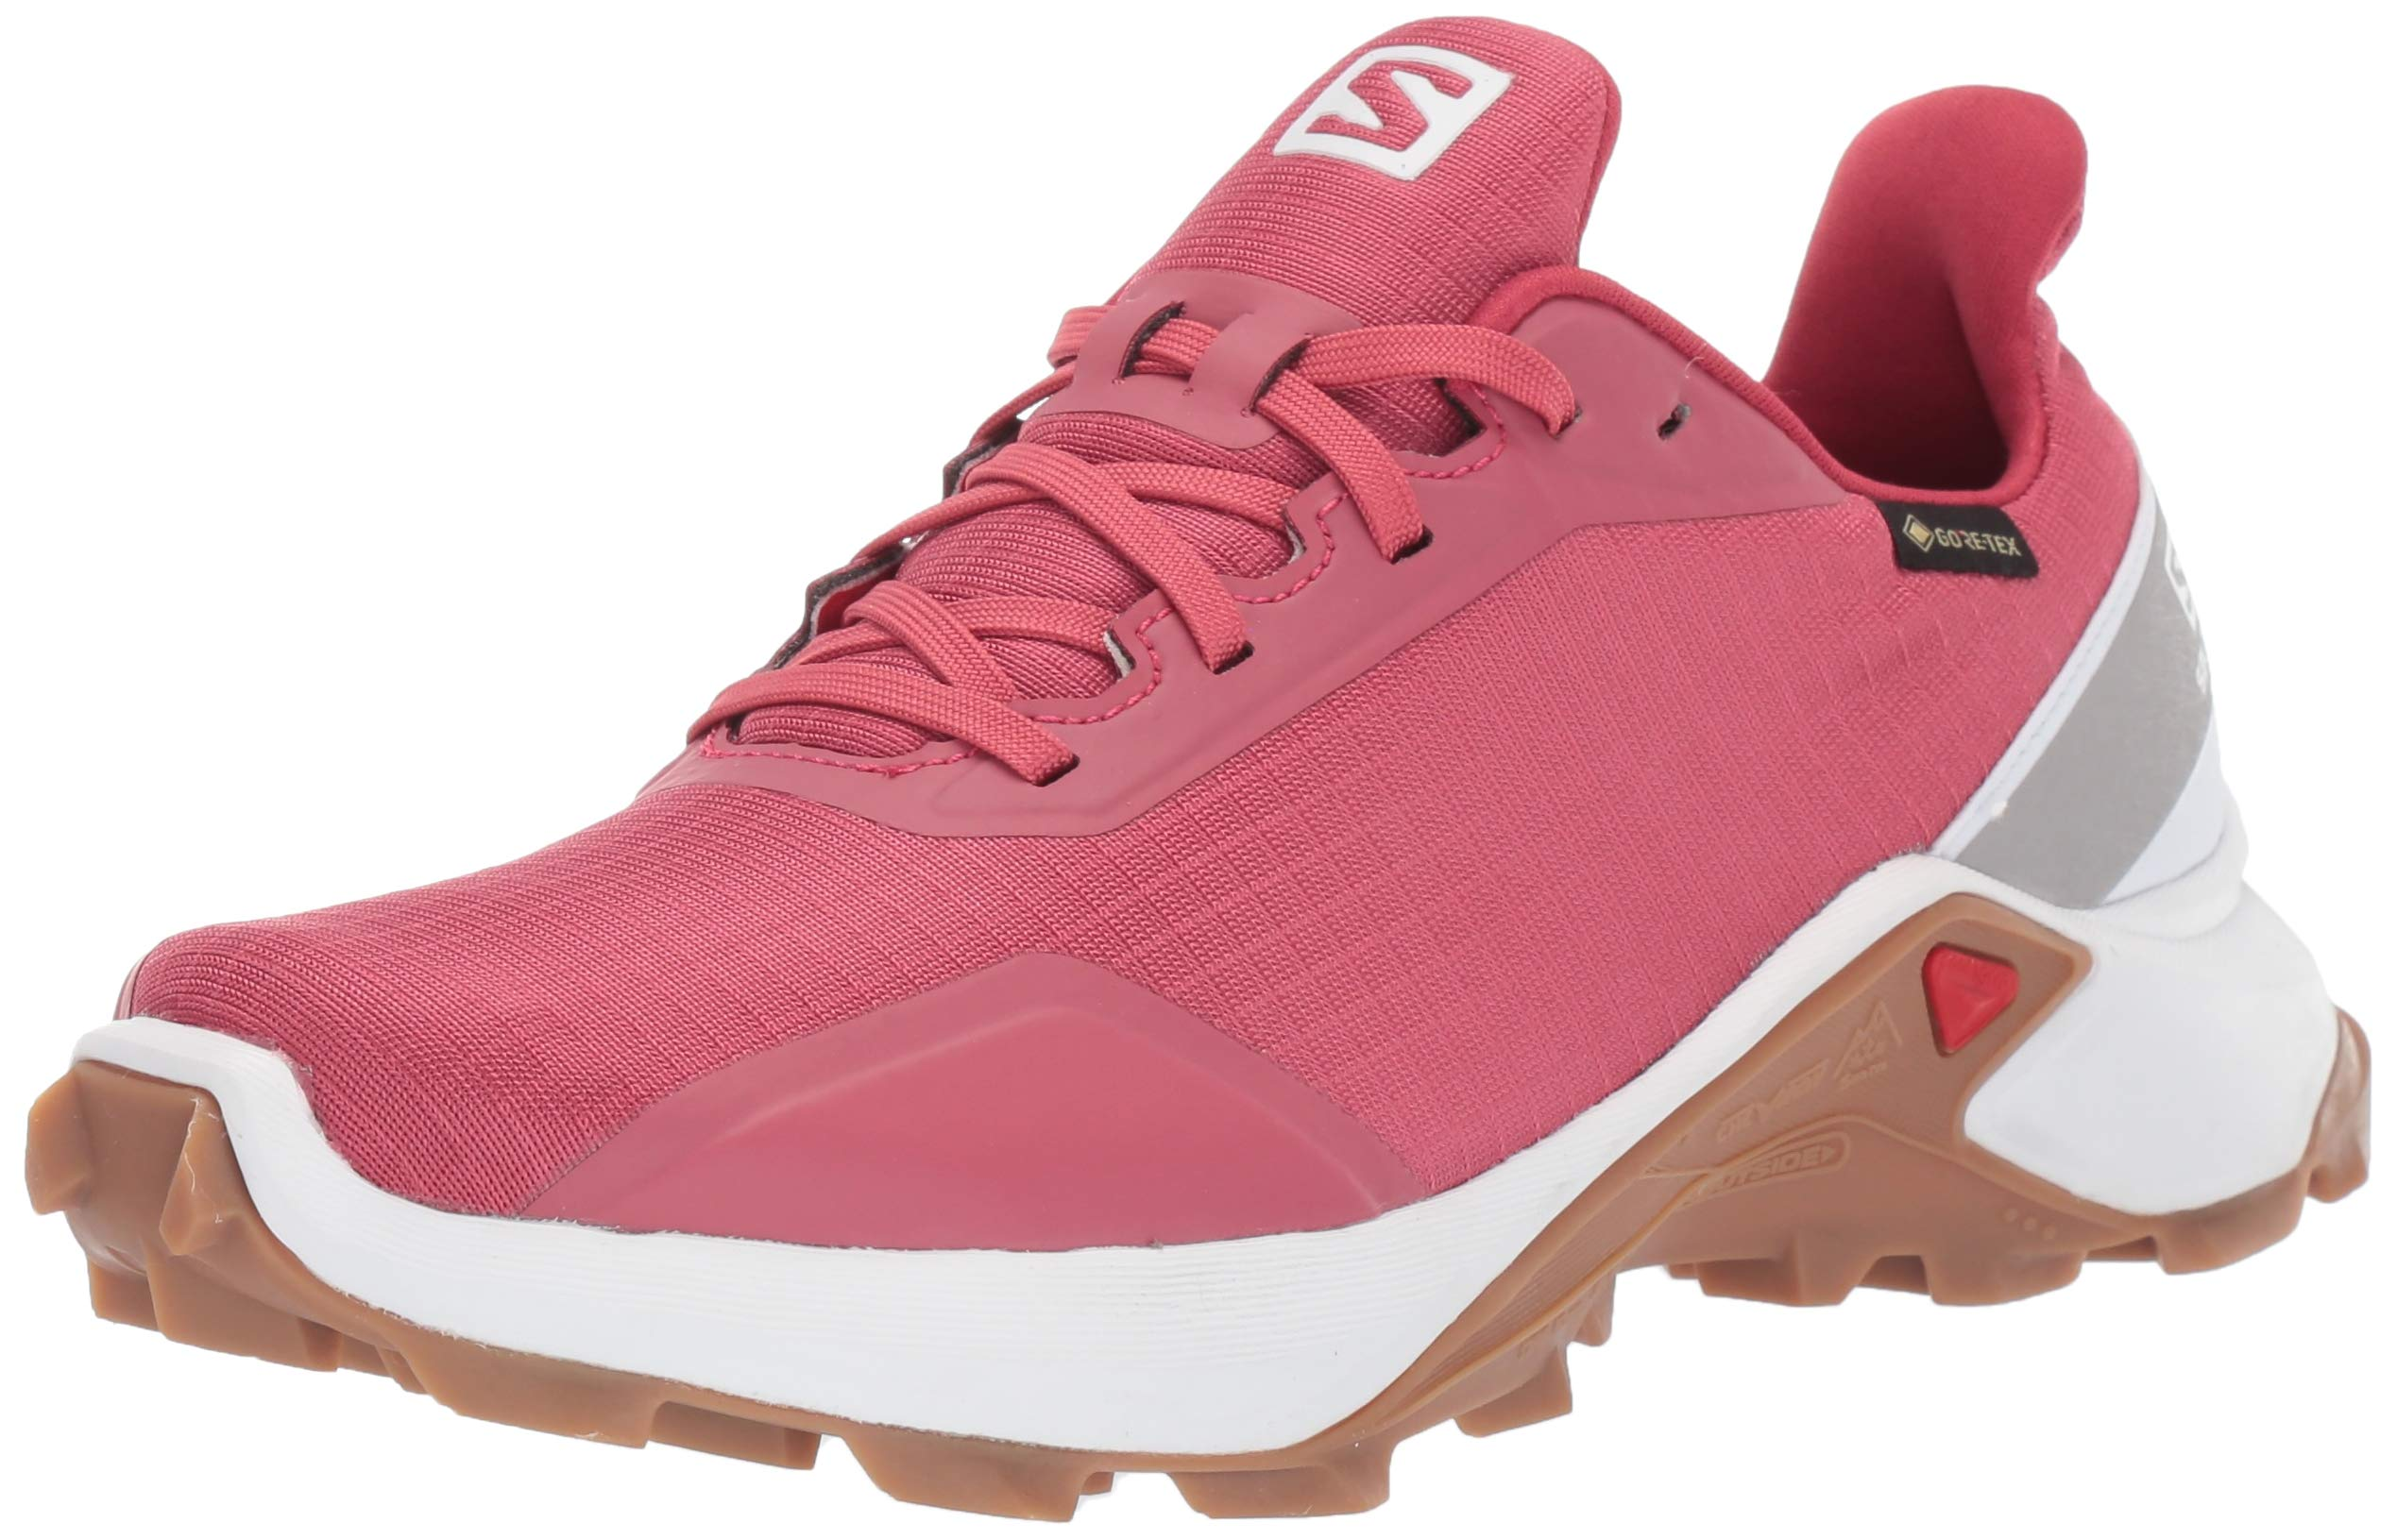 Salomon Women's Alphacross GTX Trail Running Shoes, Garnet Rose/White/GUM1A, 8.5 by SALOMON